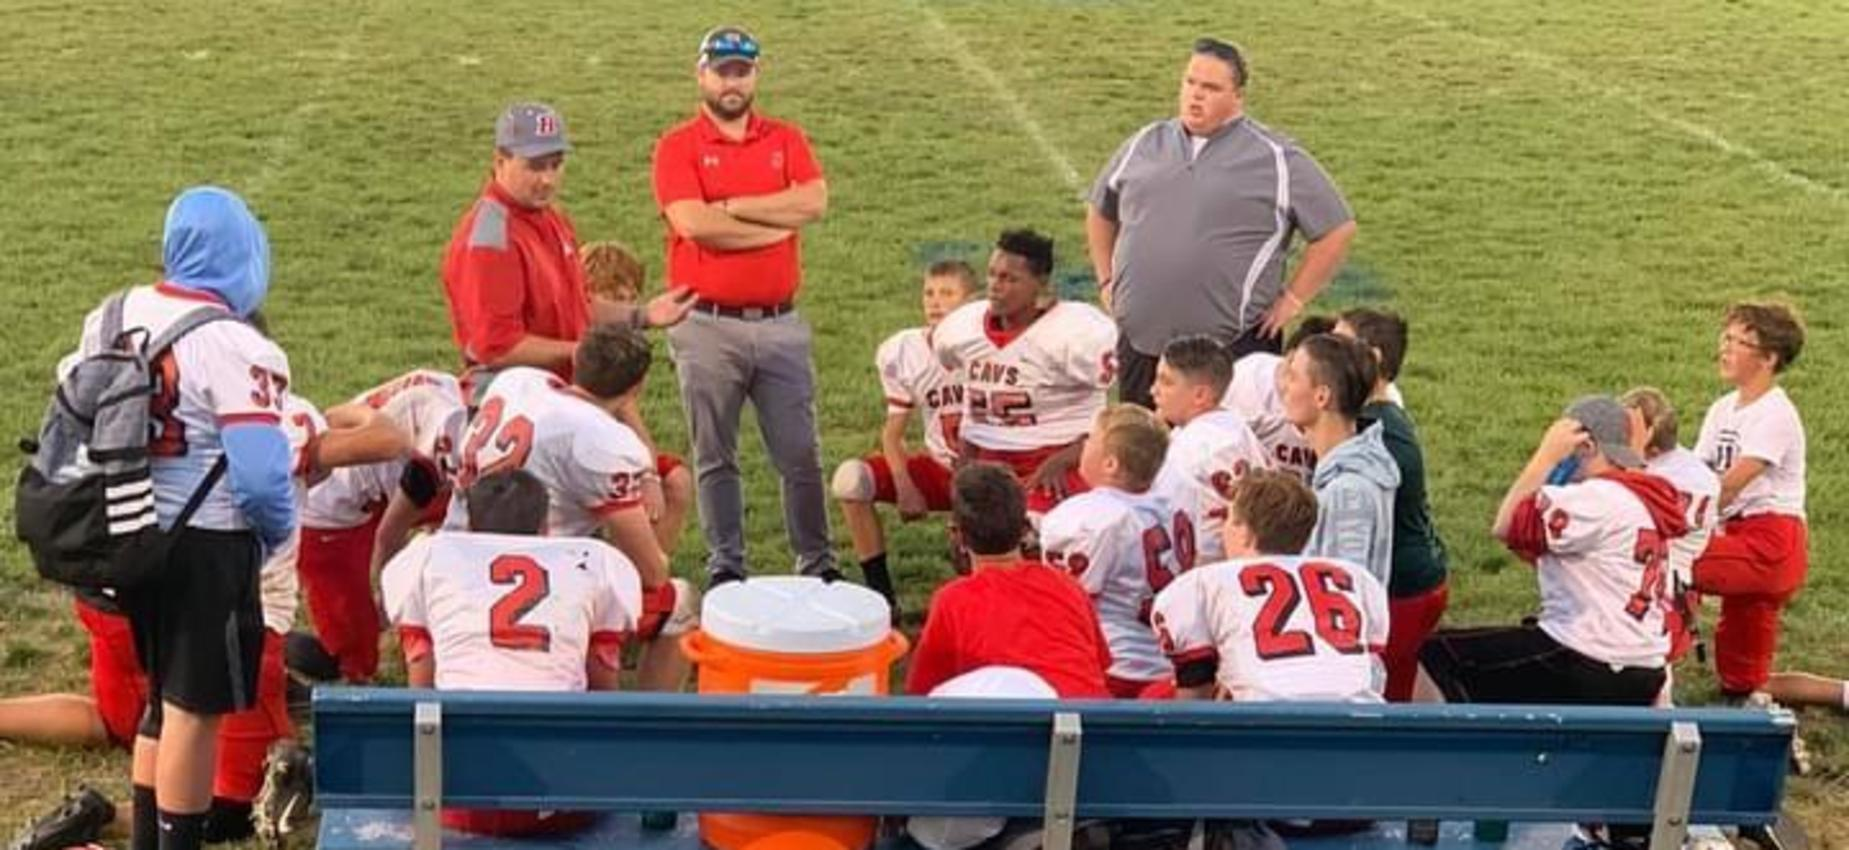 A coach talks to a group of football players on a field.